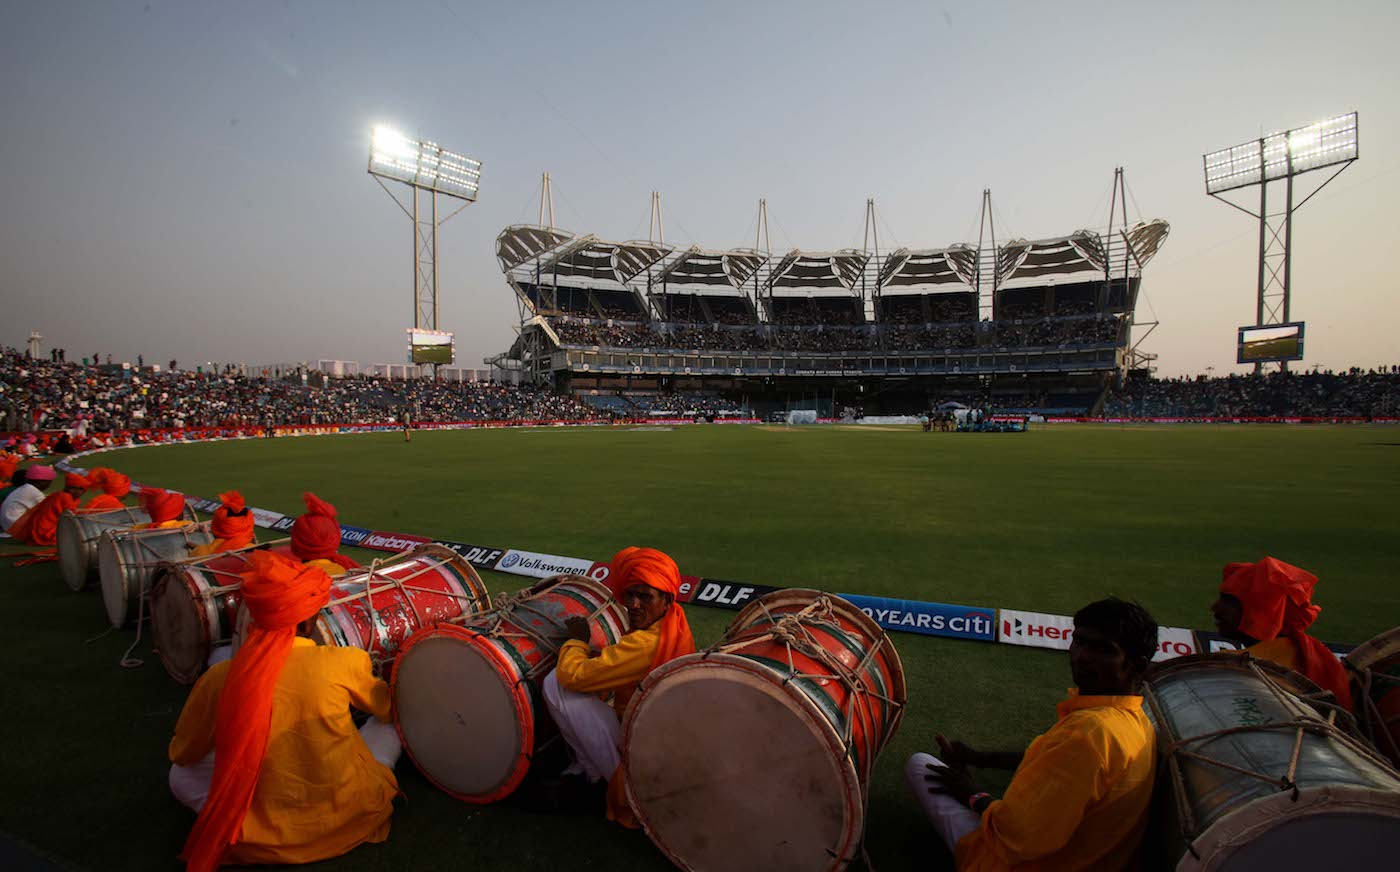 A drum crew waits to perform at the inauguration of the MCA stadium and its first IPL match